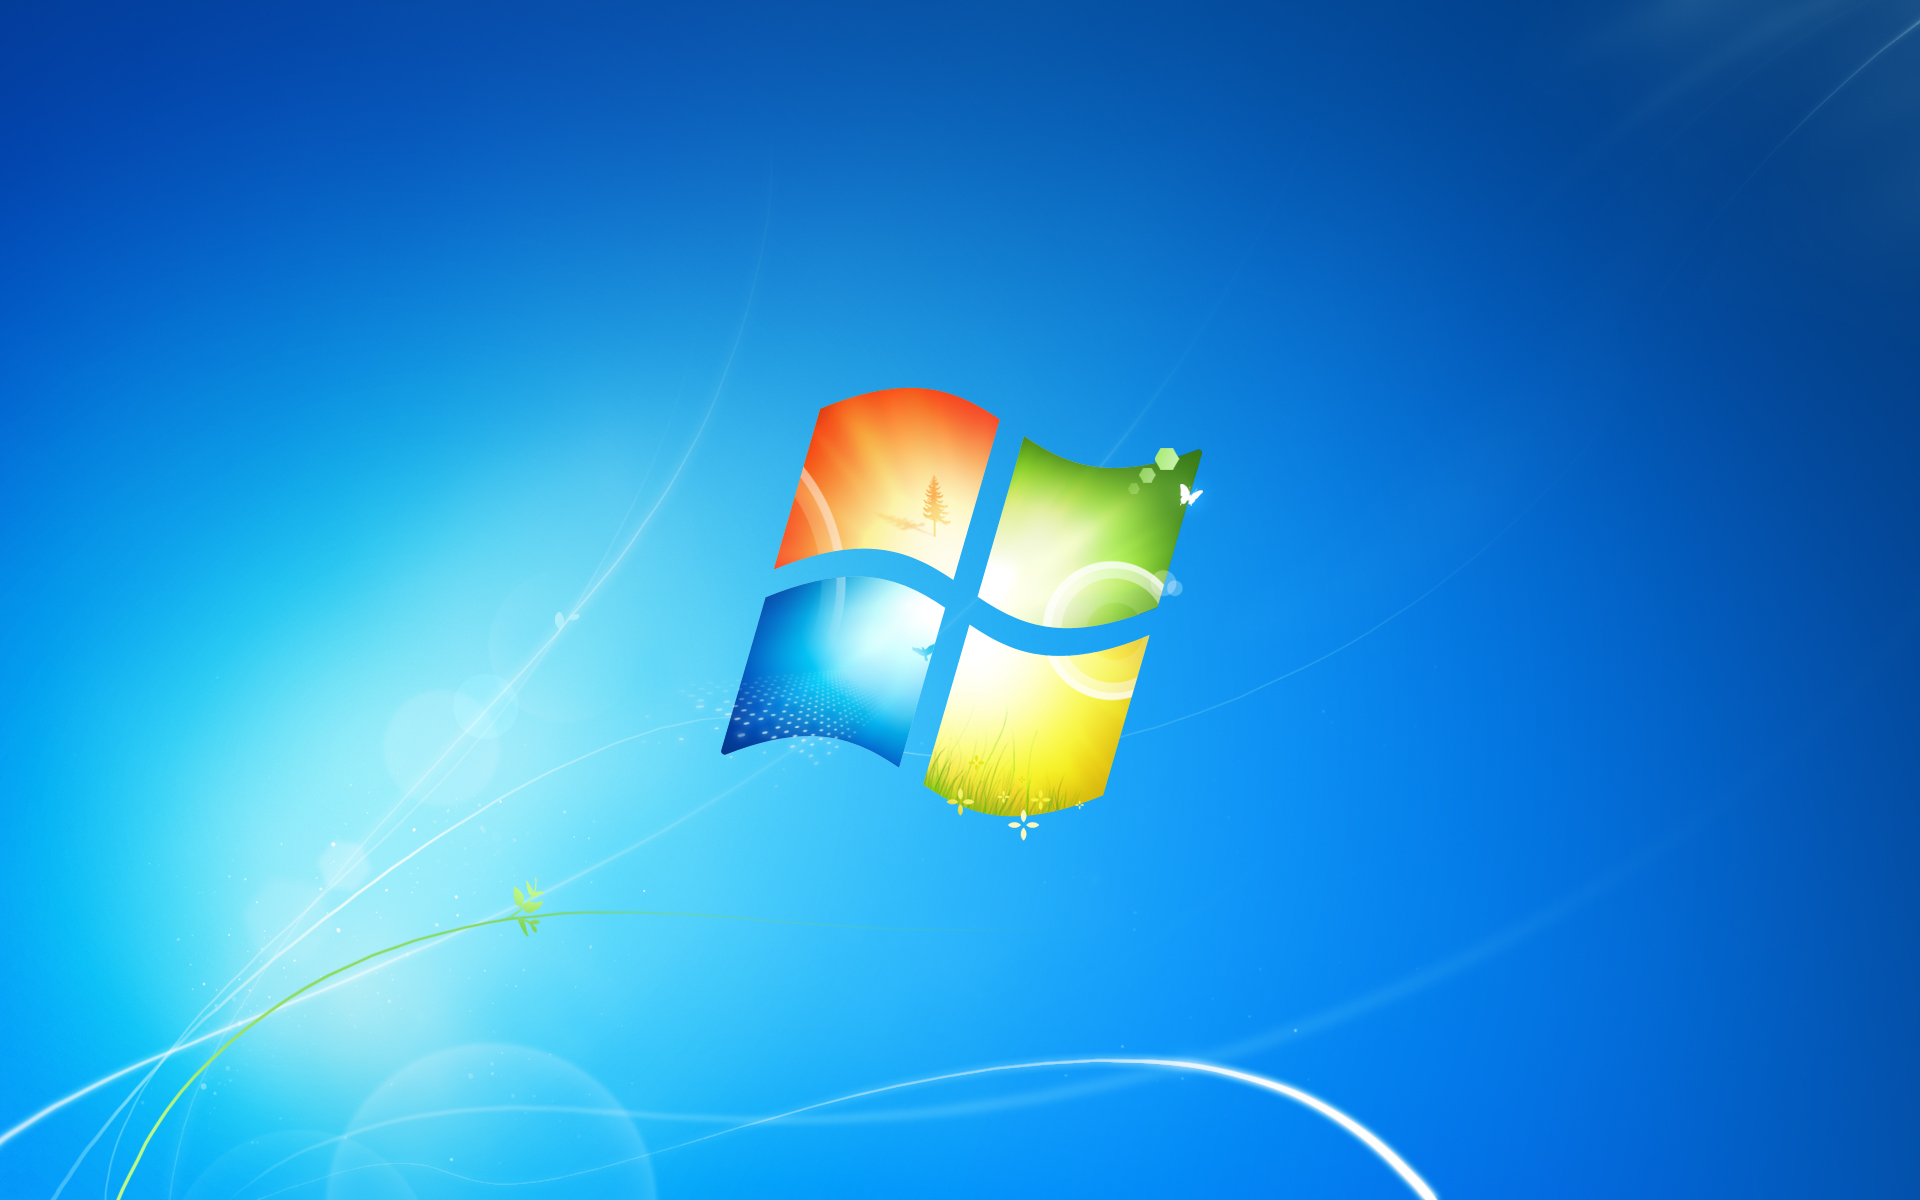 Parallels desktop 7 wallpaper 419124 for Latest microsoft windows